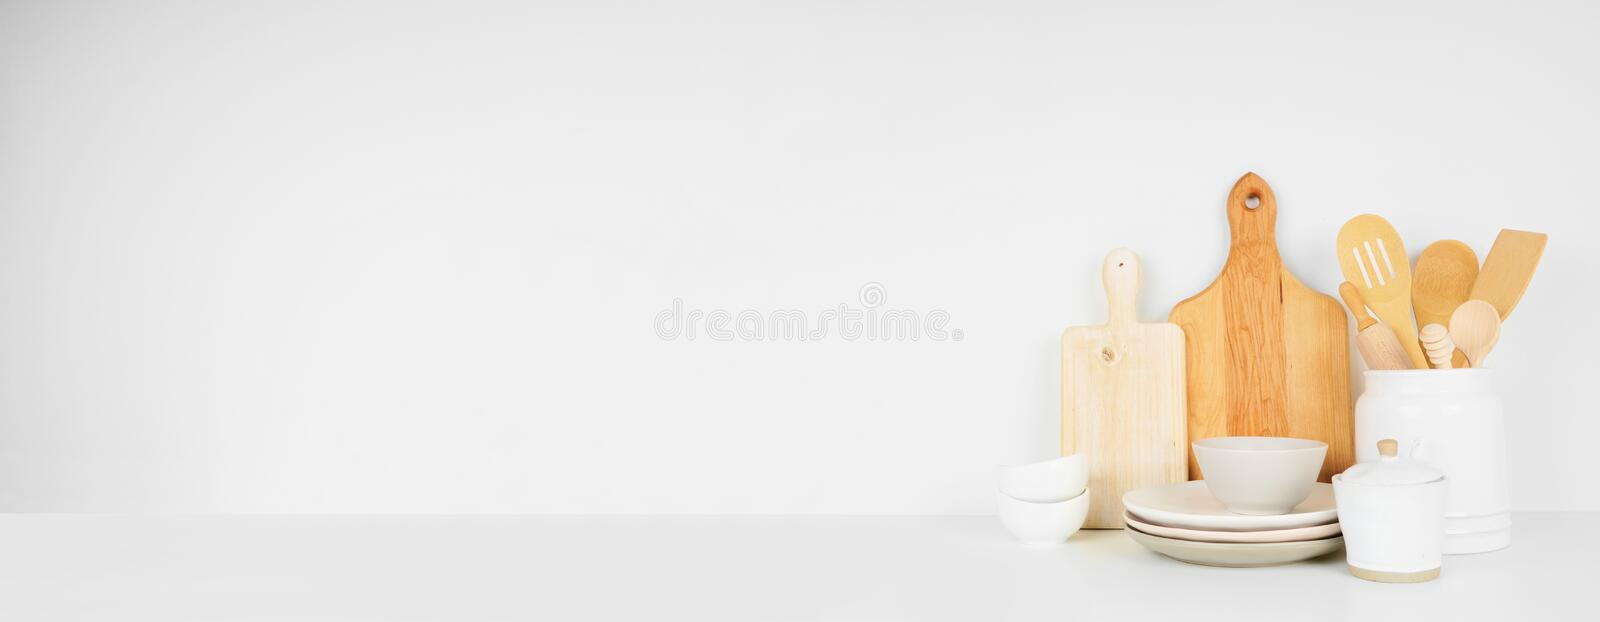 Kitchenware and utensils on a white shelf or counter. Banner with a white wall background and copy space. royalty free stock photography